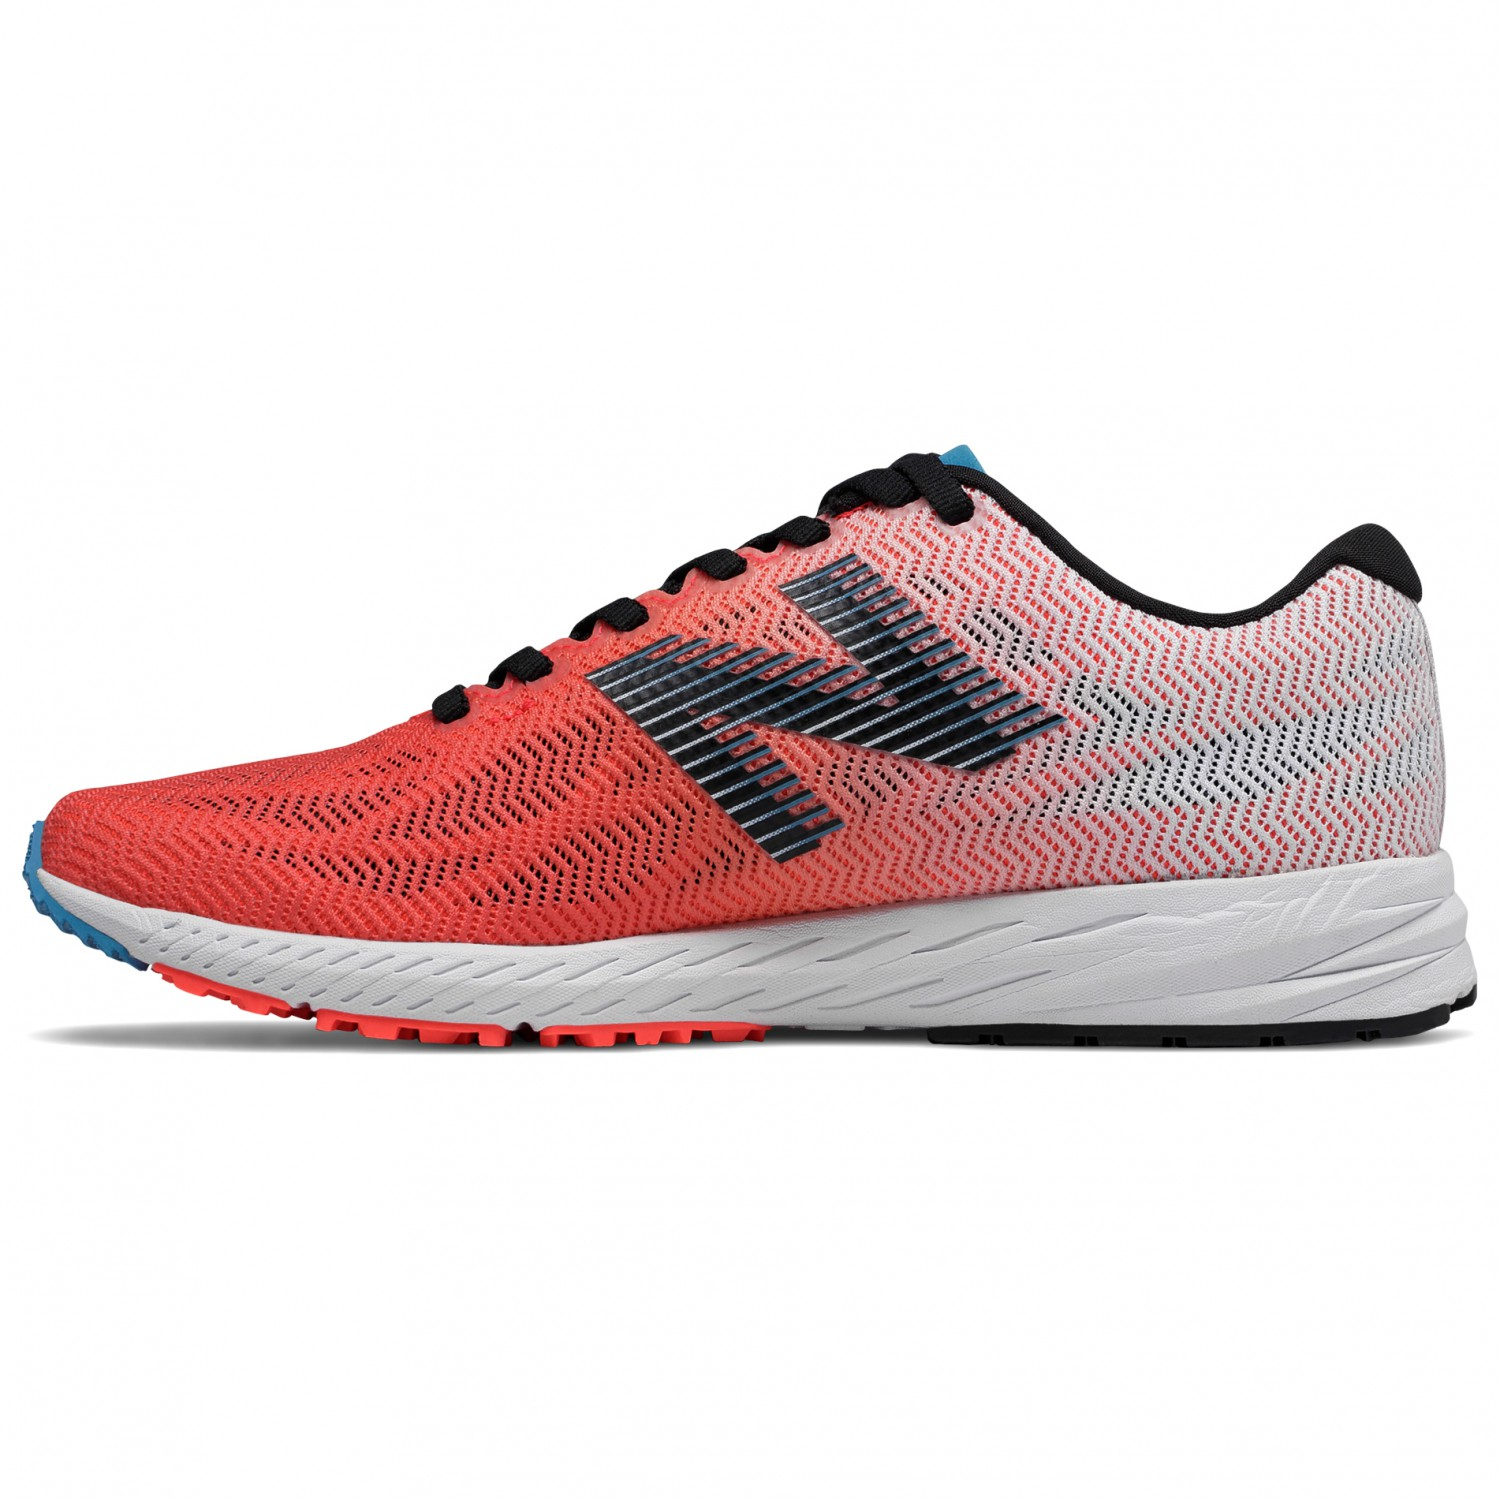 New Balance 1400 V6 - Running shoes Women's | Buy online ...